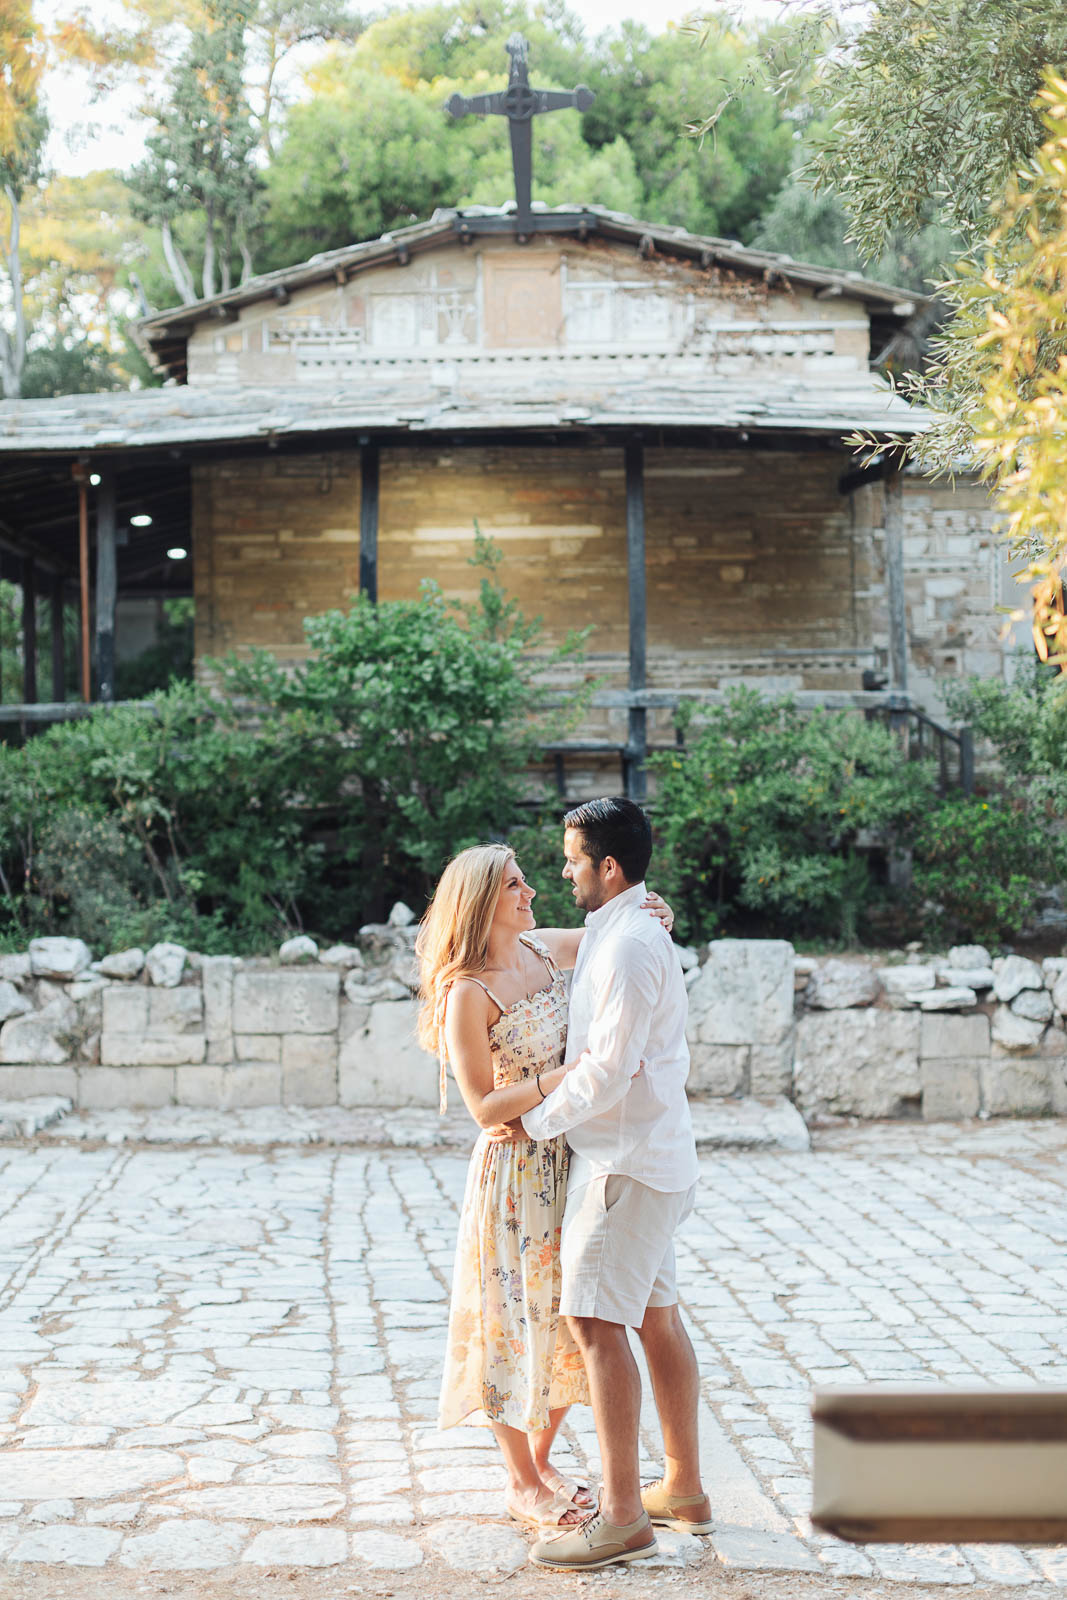 Marriage proposal photo session in Athens